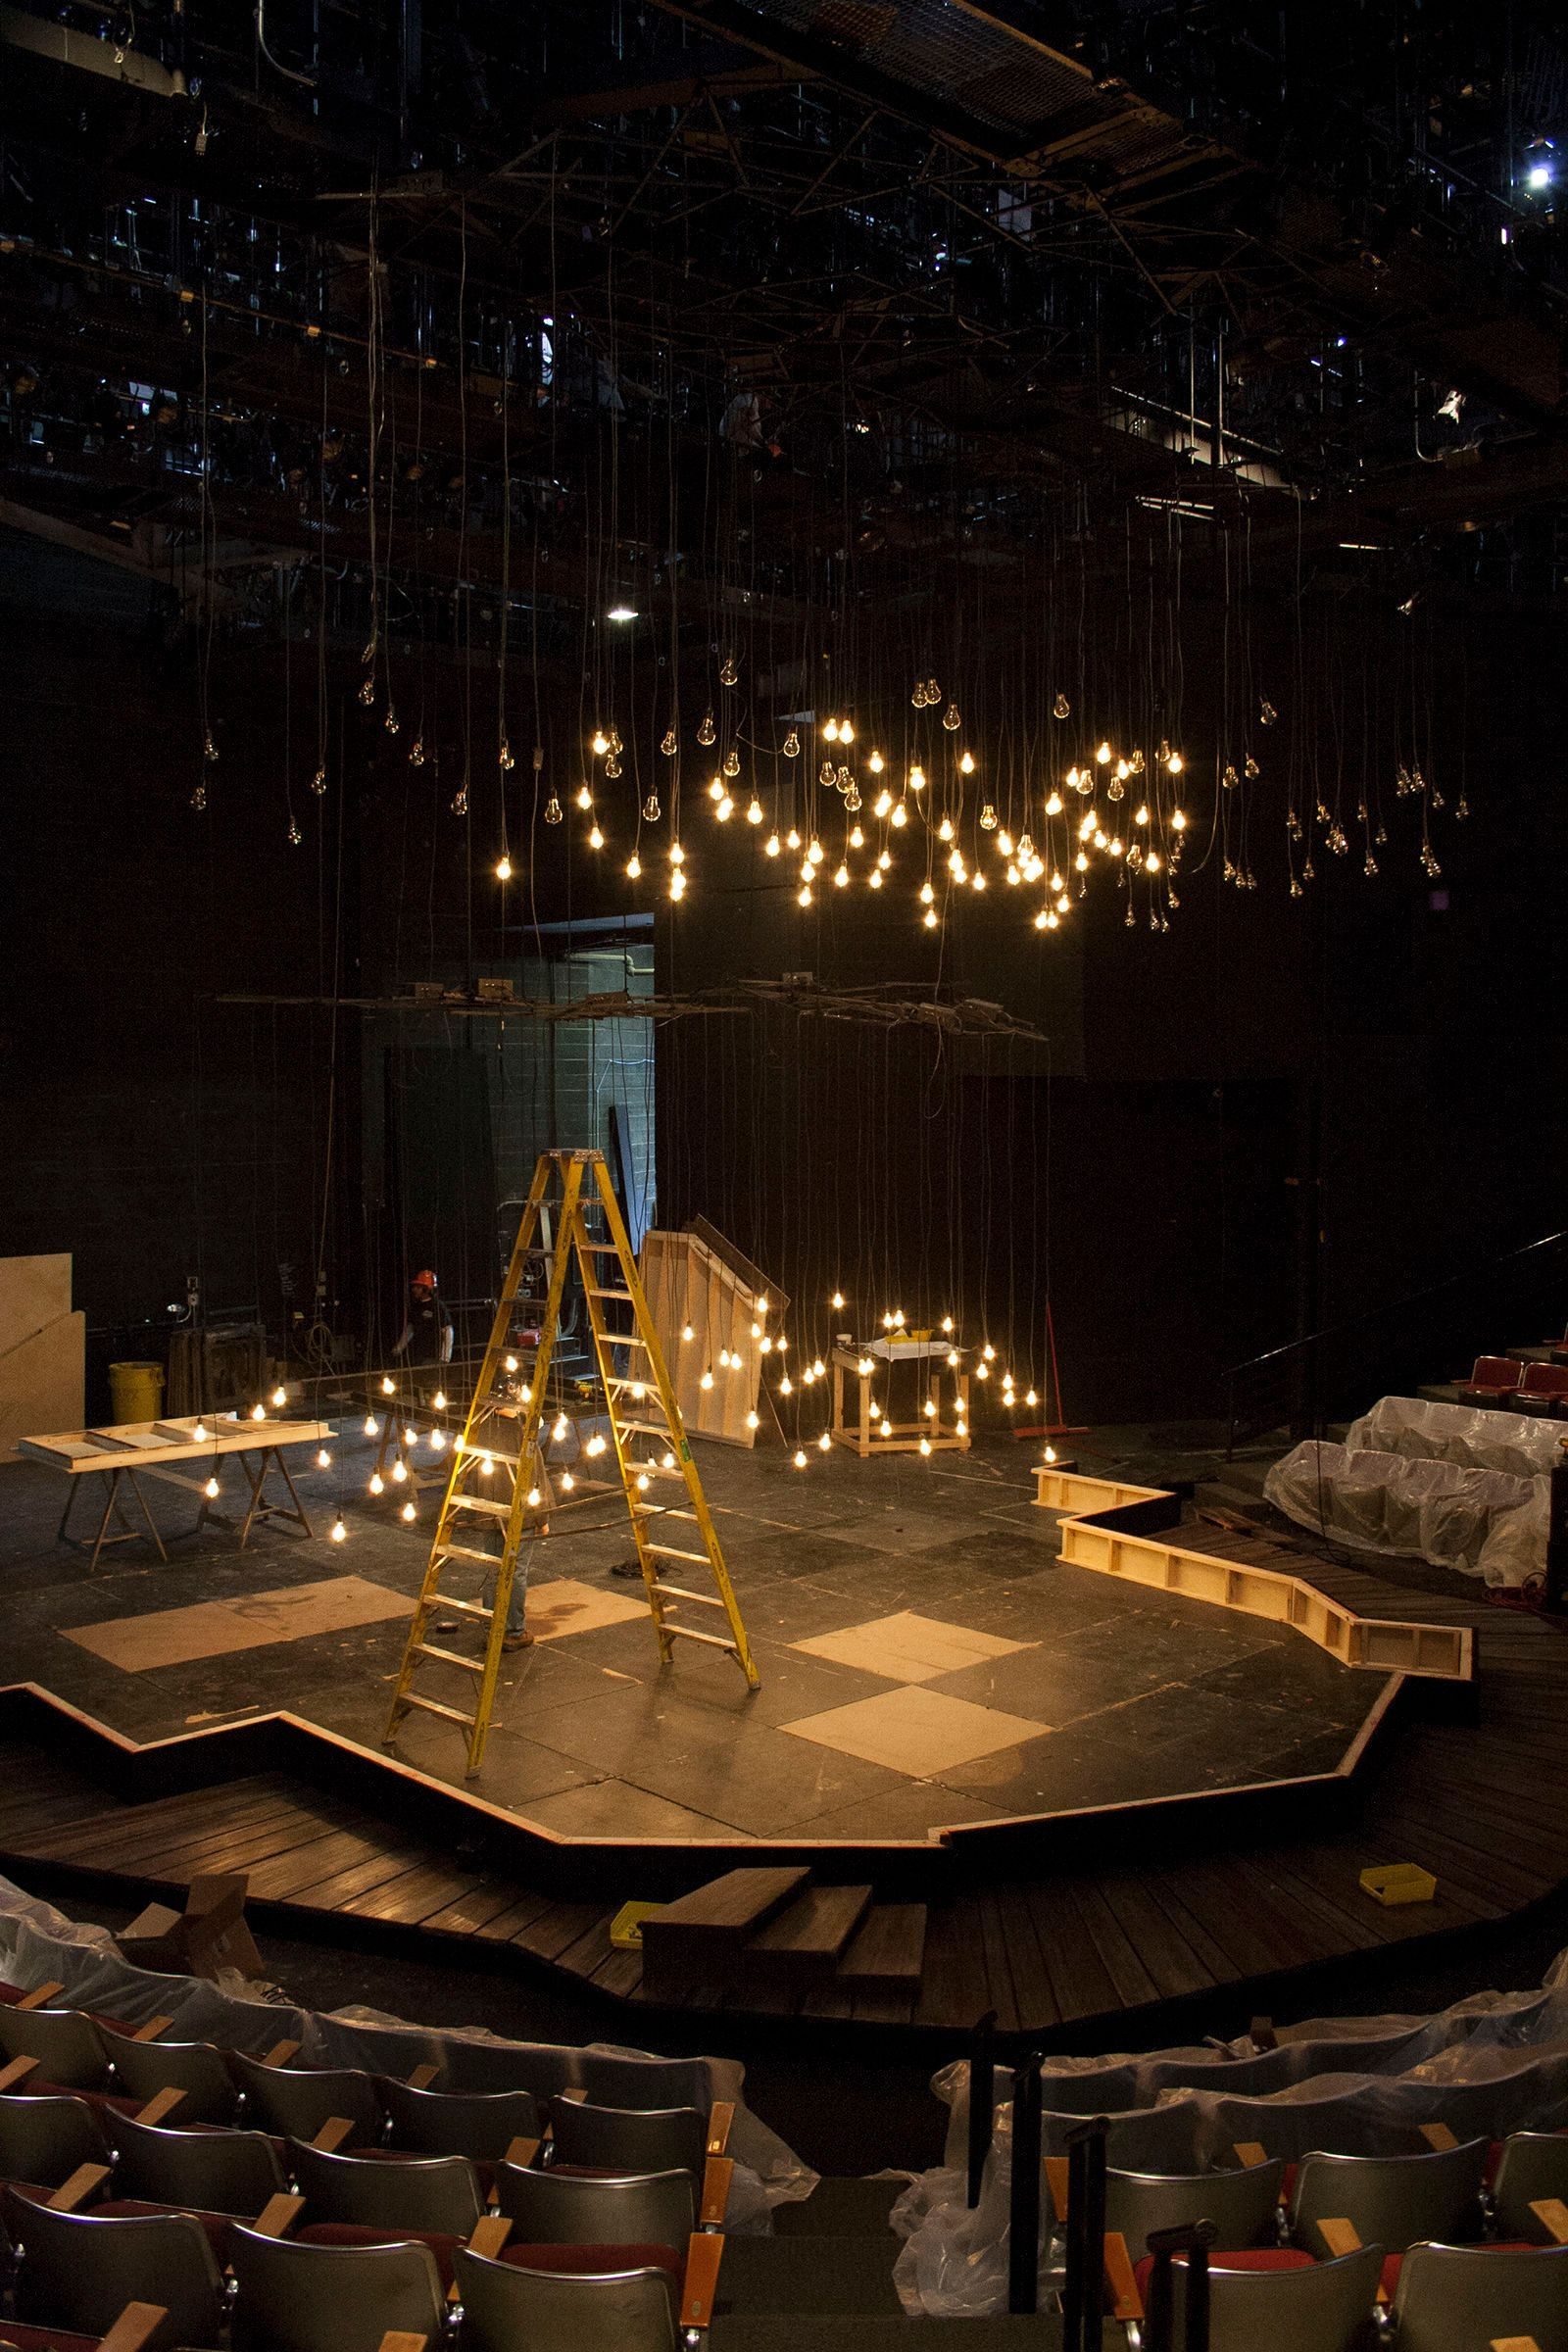 Playhouse S Peter Brings A Spectacle To The Stage Stage Lighting Design Set Design Theatre Stage Set Design